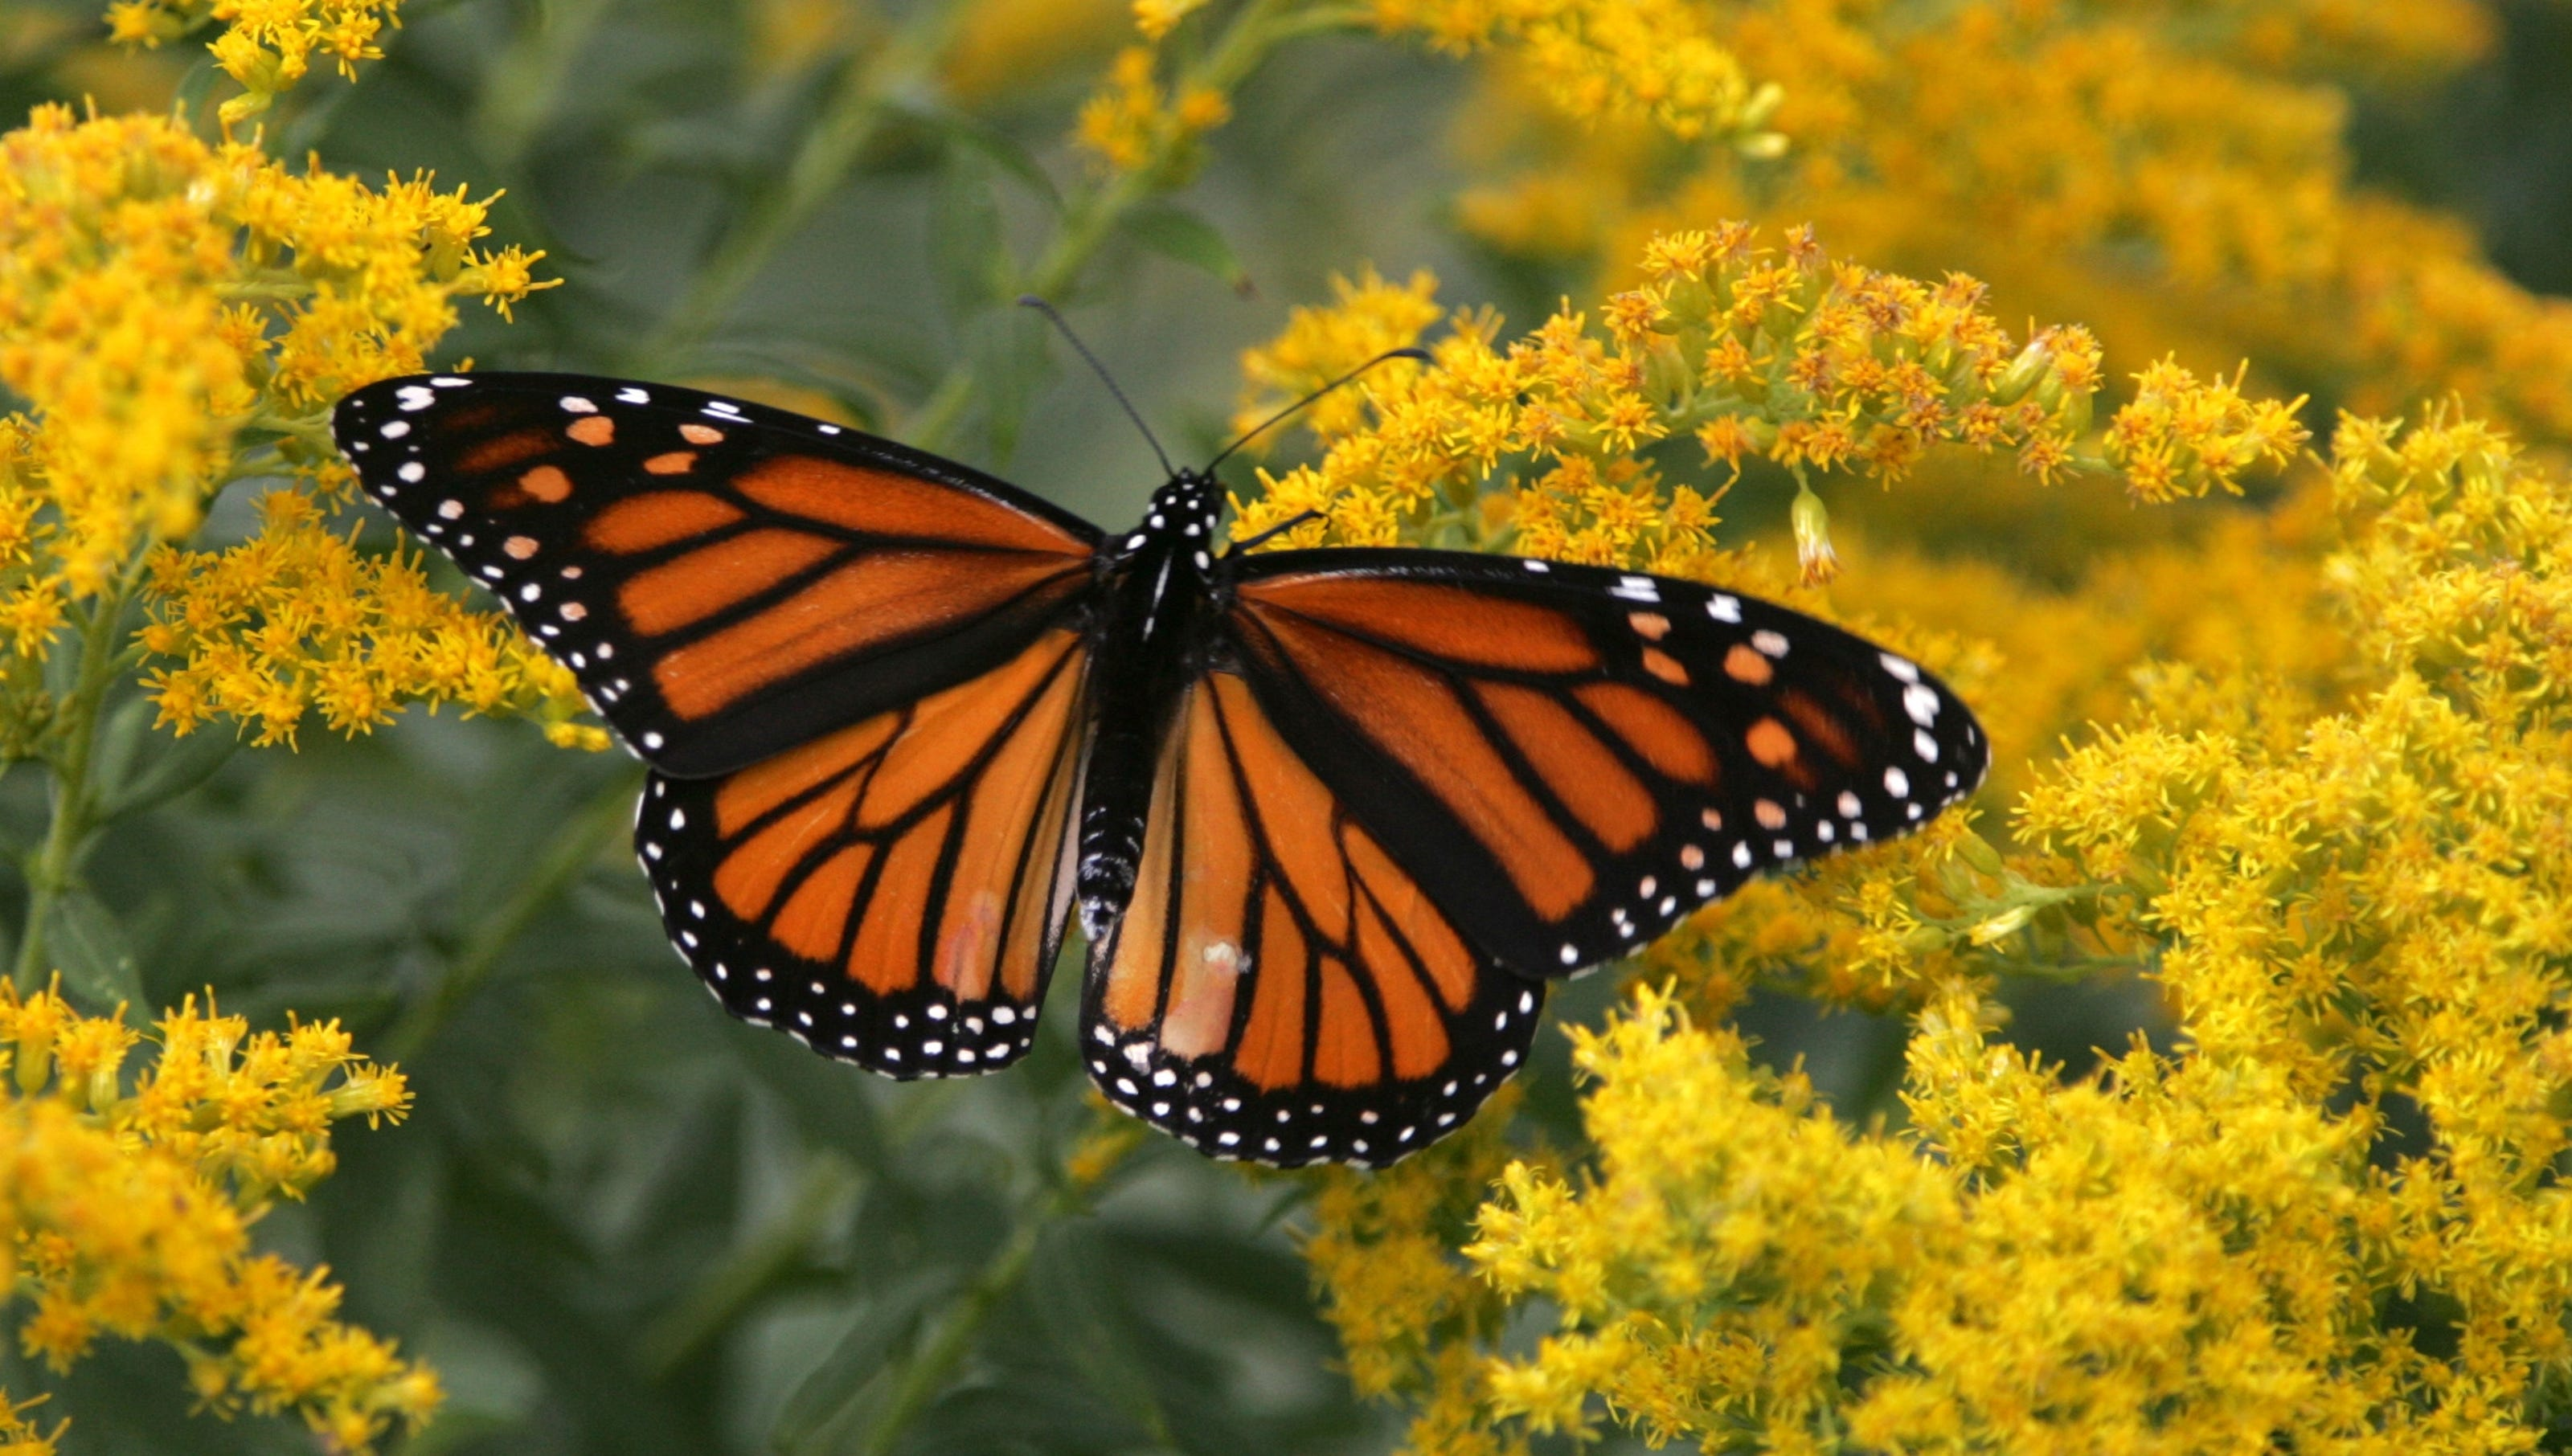 Drought Wildfires Shrink Monarch Butterfly Population